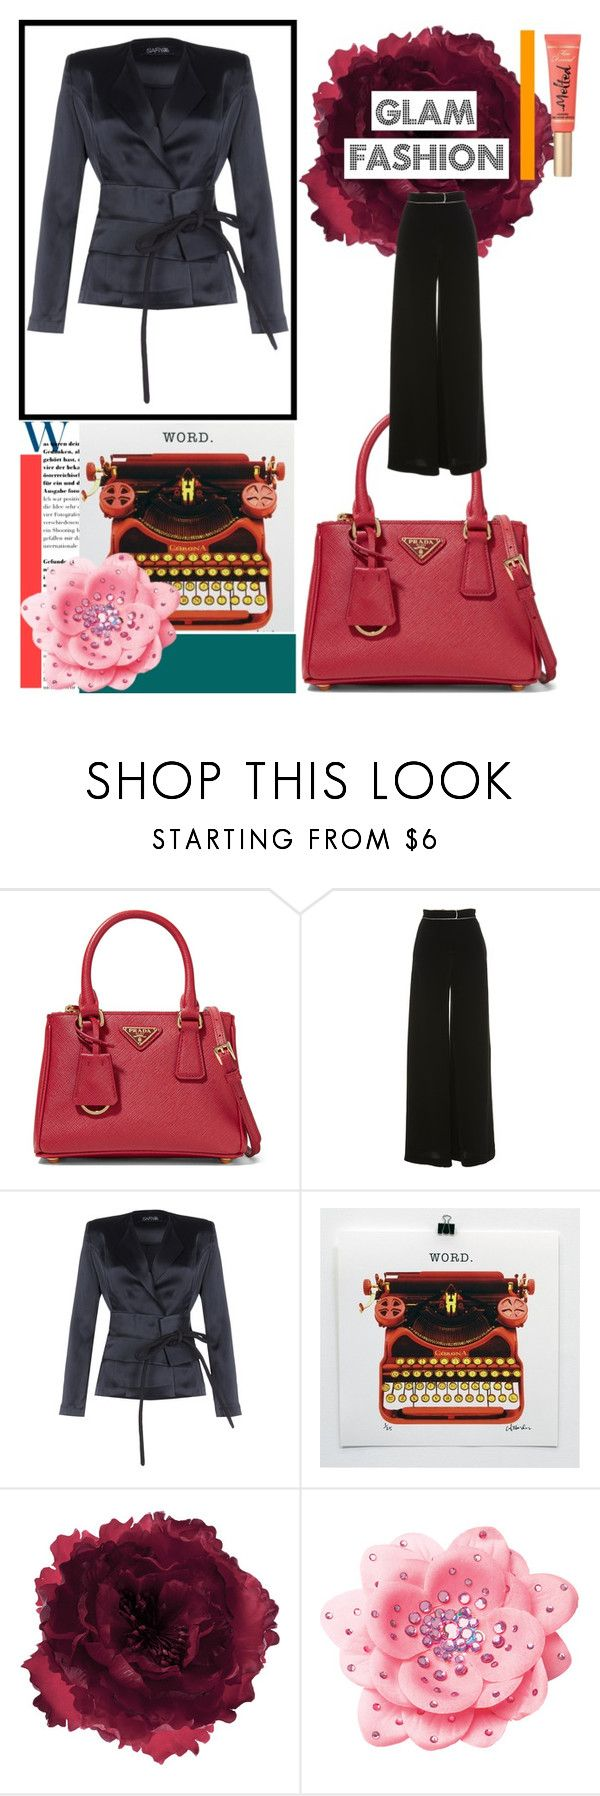 """""""A Japanese Form At Work"""" by osmianannya ❤ liked on Polyvore featuring Prada, Martin Grant, Safiyaa, Accessorize, jacket and trousers"""